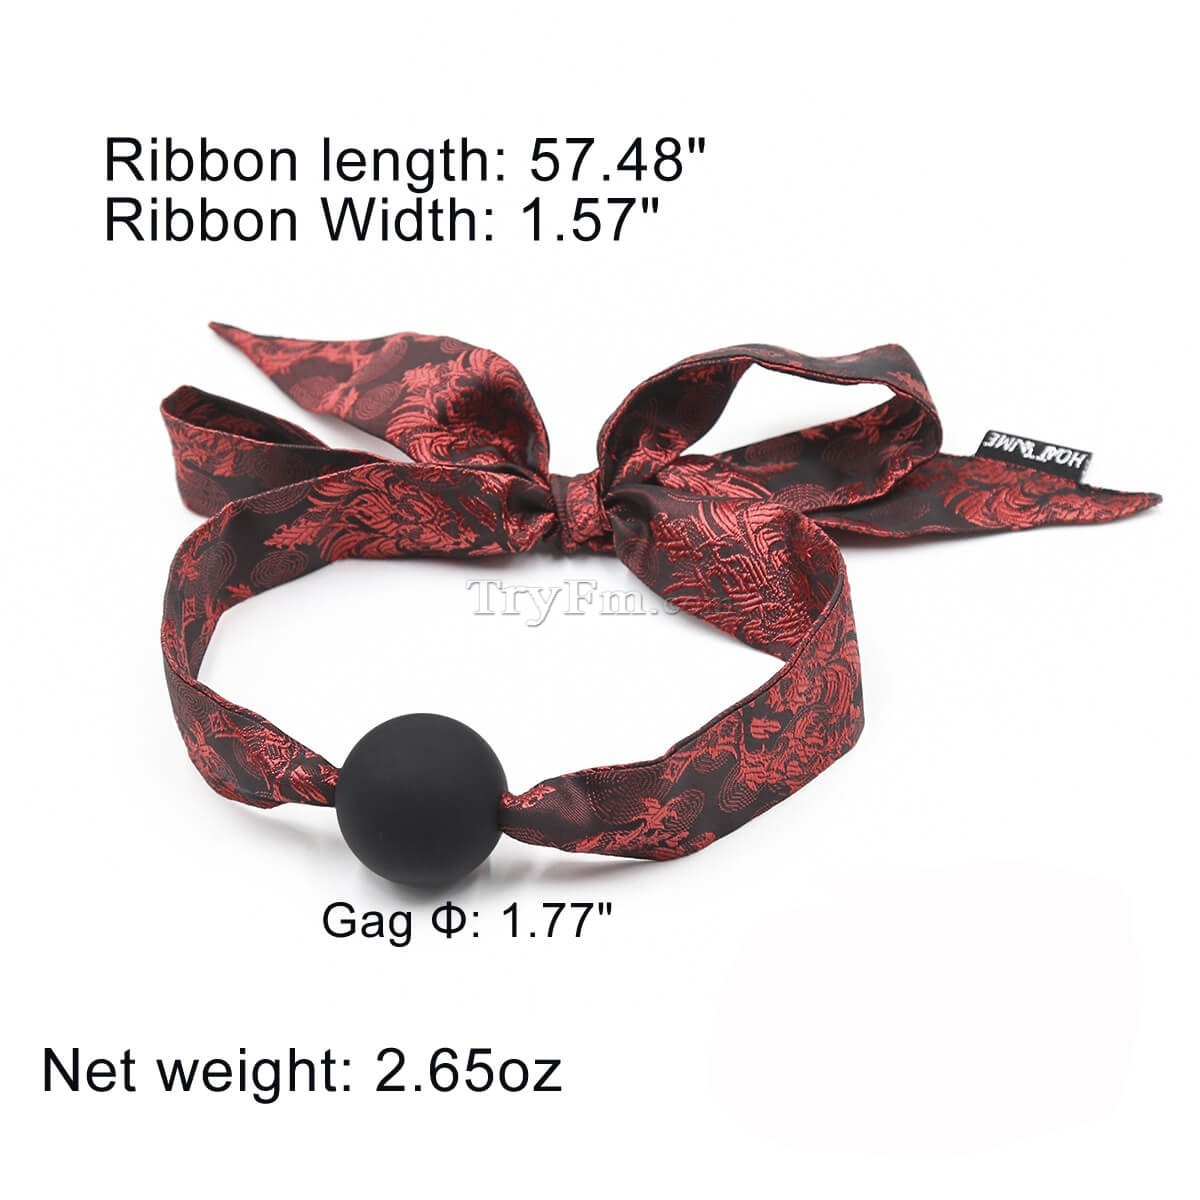 9-Silicone-Ball-gag-with-Patterned-Ribbon5.jpg